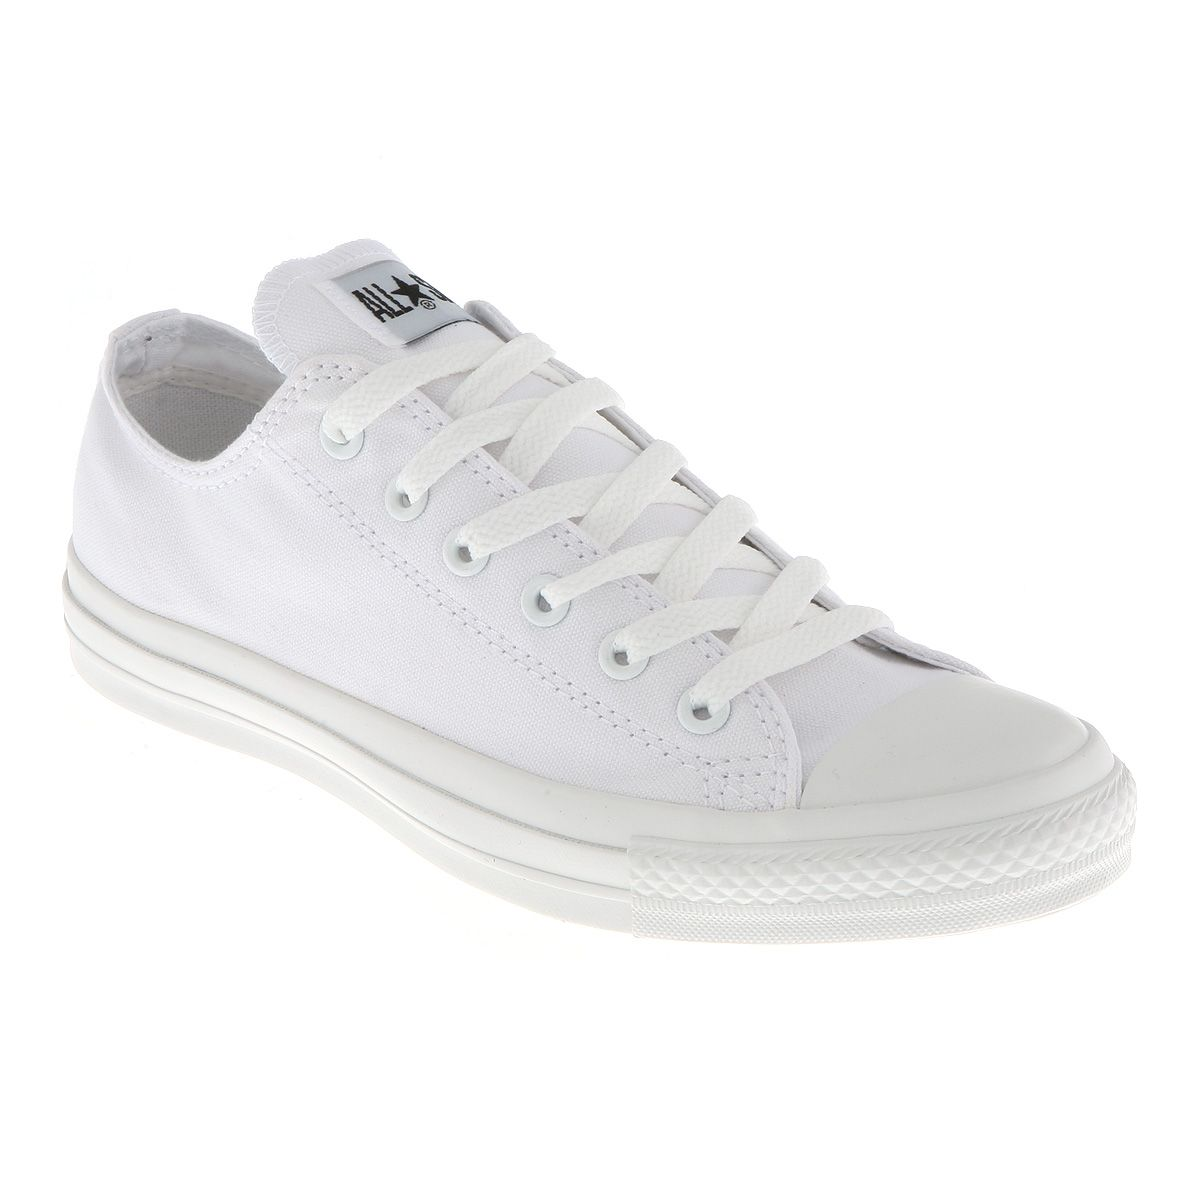 Converse 'White' All Star Leather Mono Ox Trainers Mens